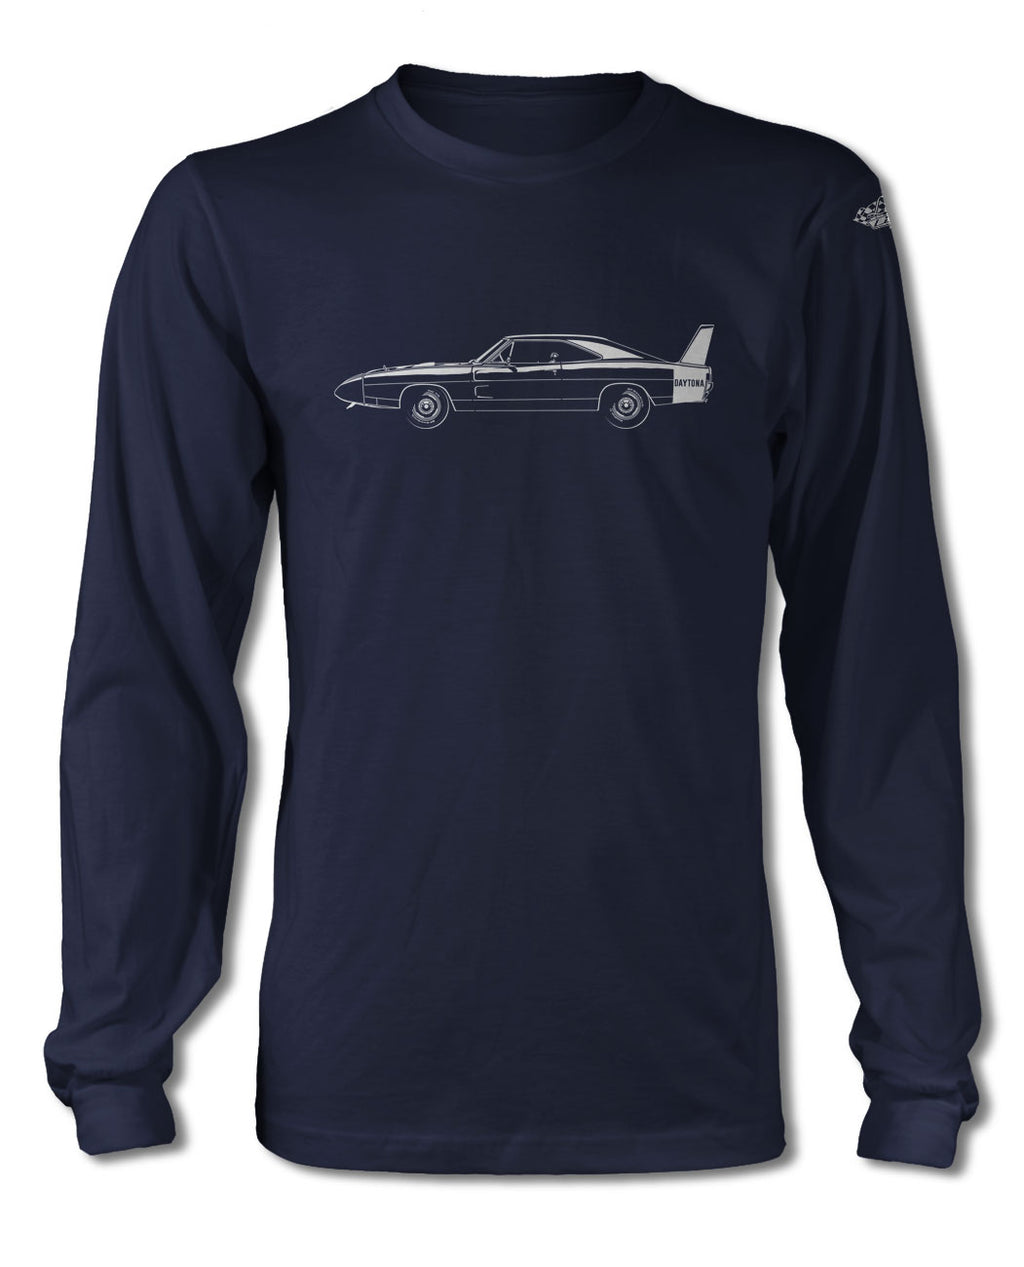 1969 Dodge Charger Daytona Coupe T-Shirt - Long Sleeves - Side View